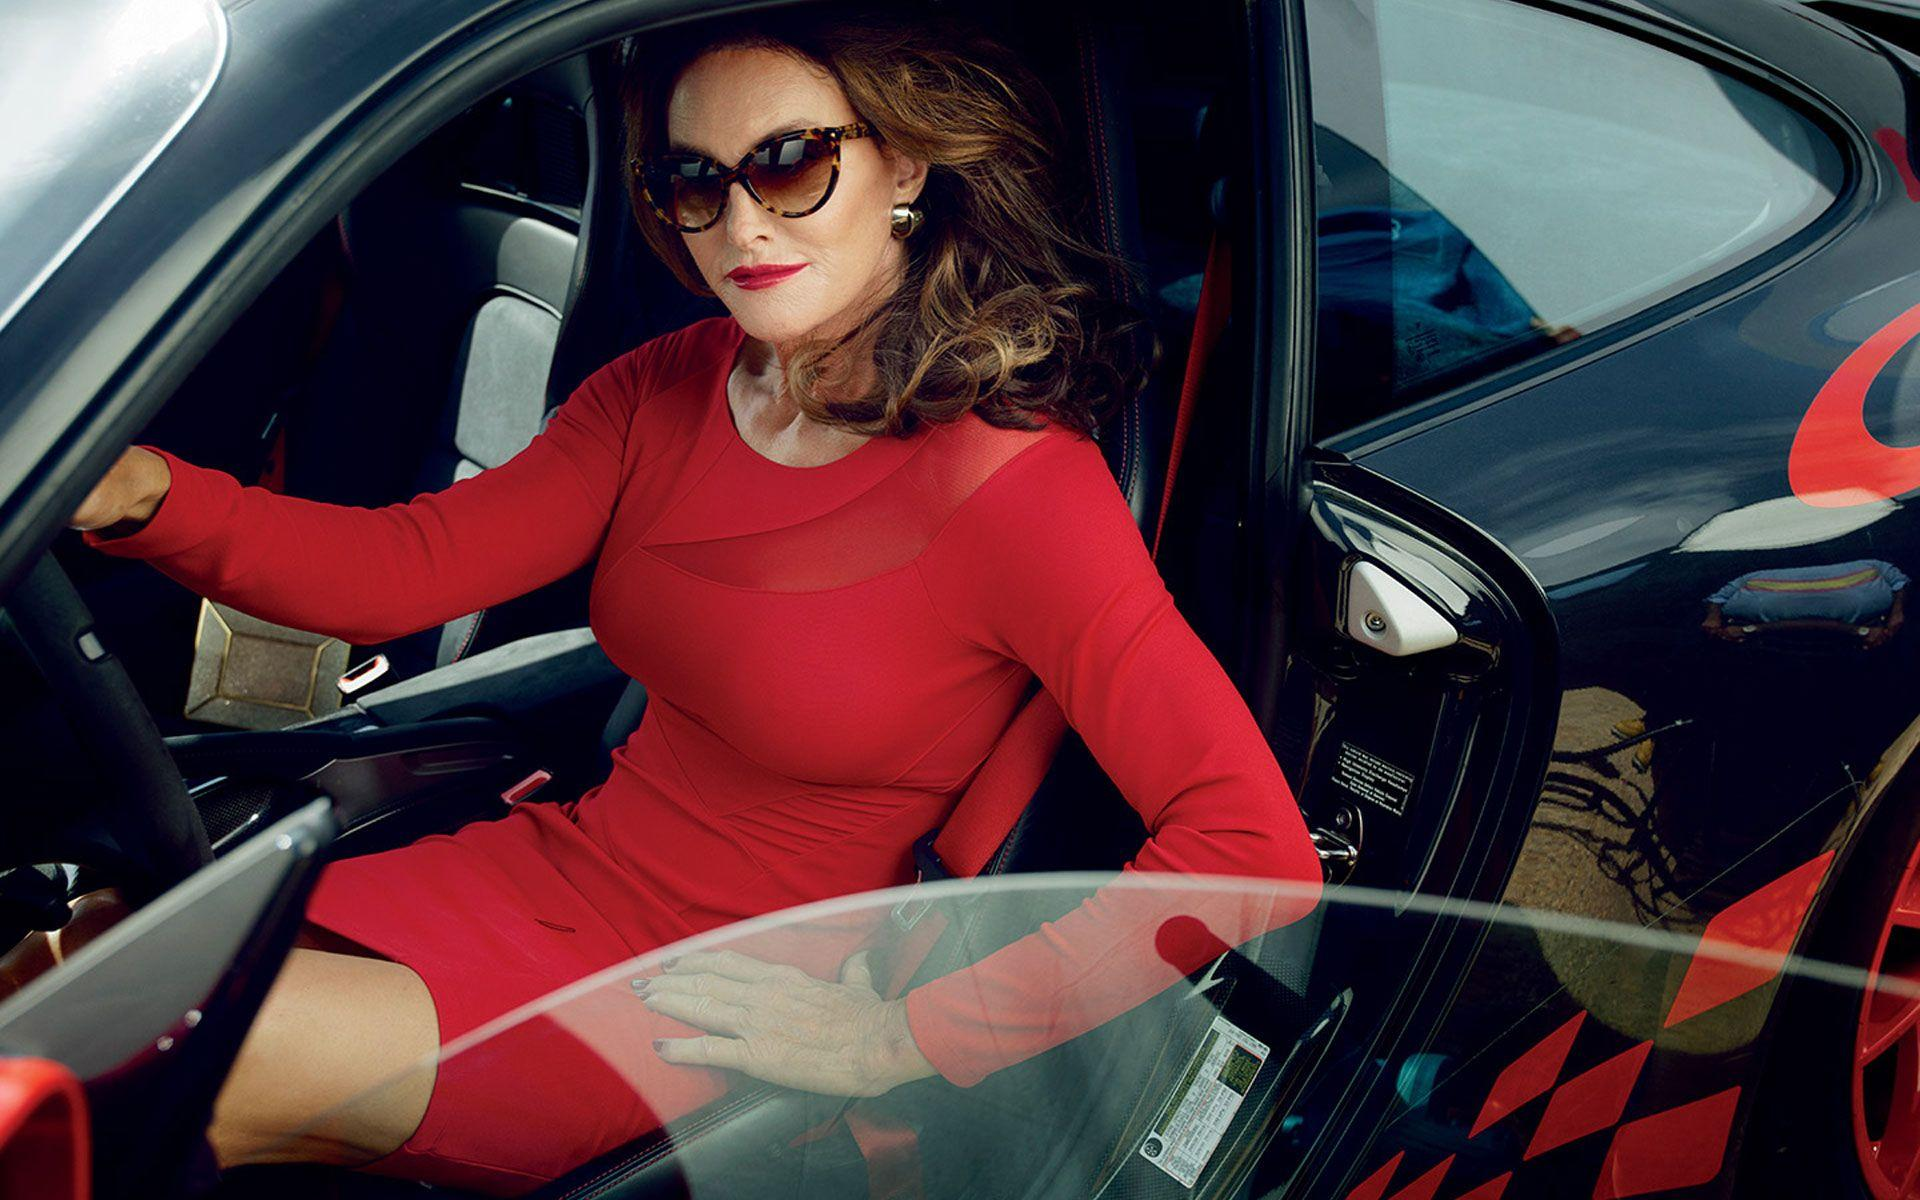 Caitlyn Jenner in a Supercar, Wearing a Sexy Red Dress 1920x1200 ...